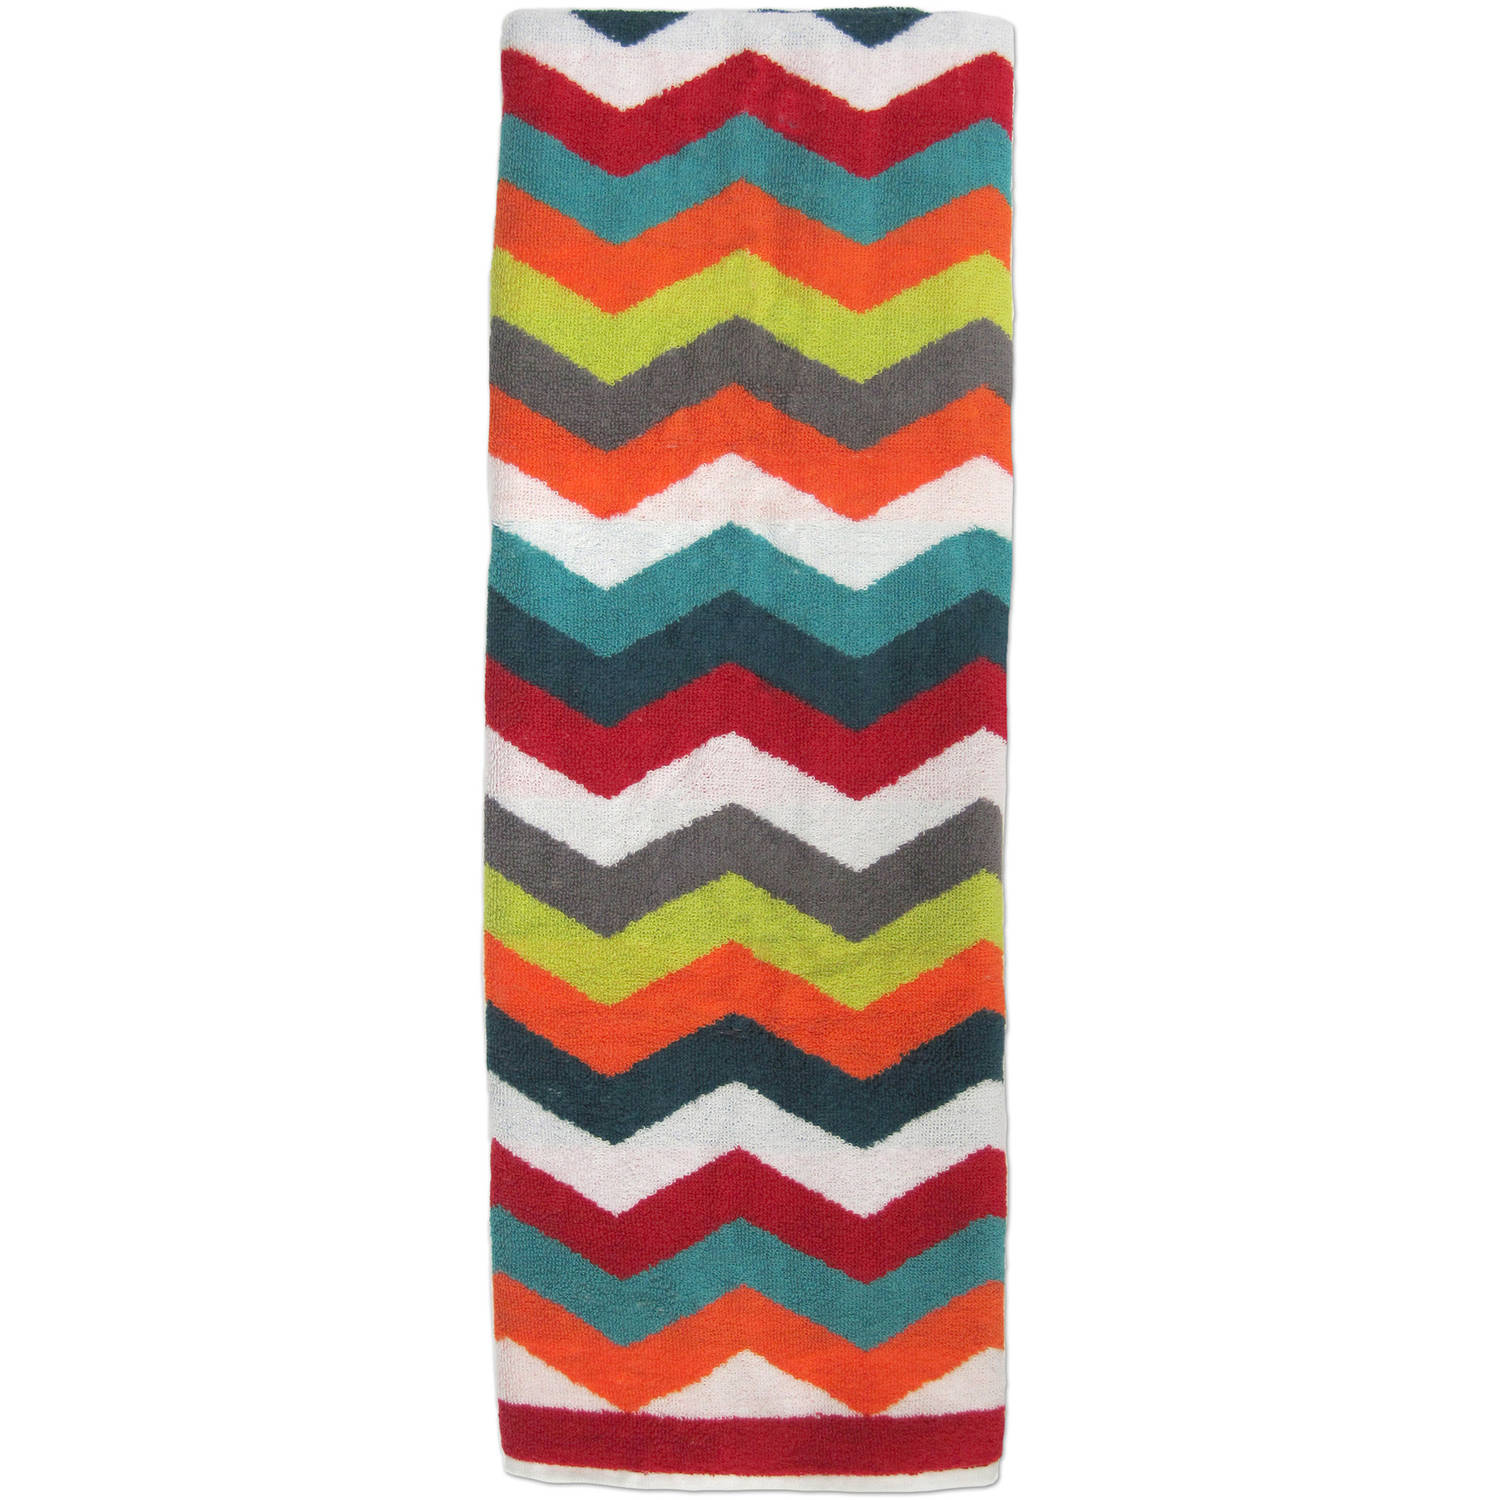 Mainstays Multi Chevron Bath Towel Collection